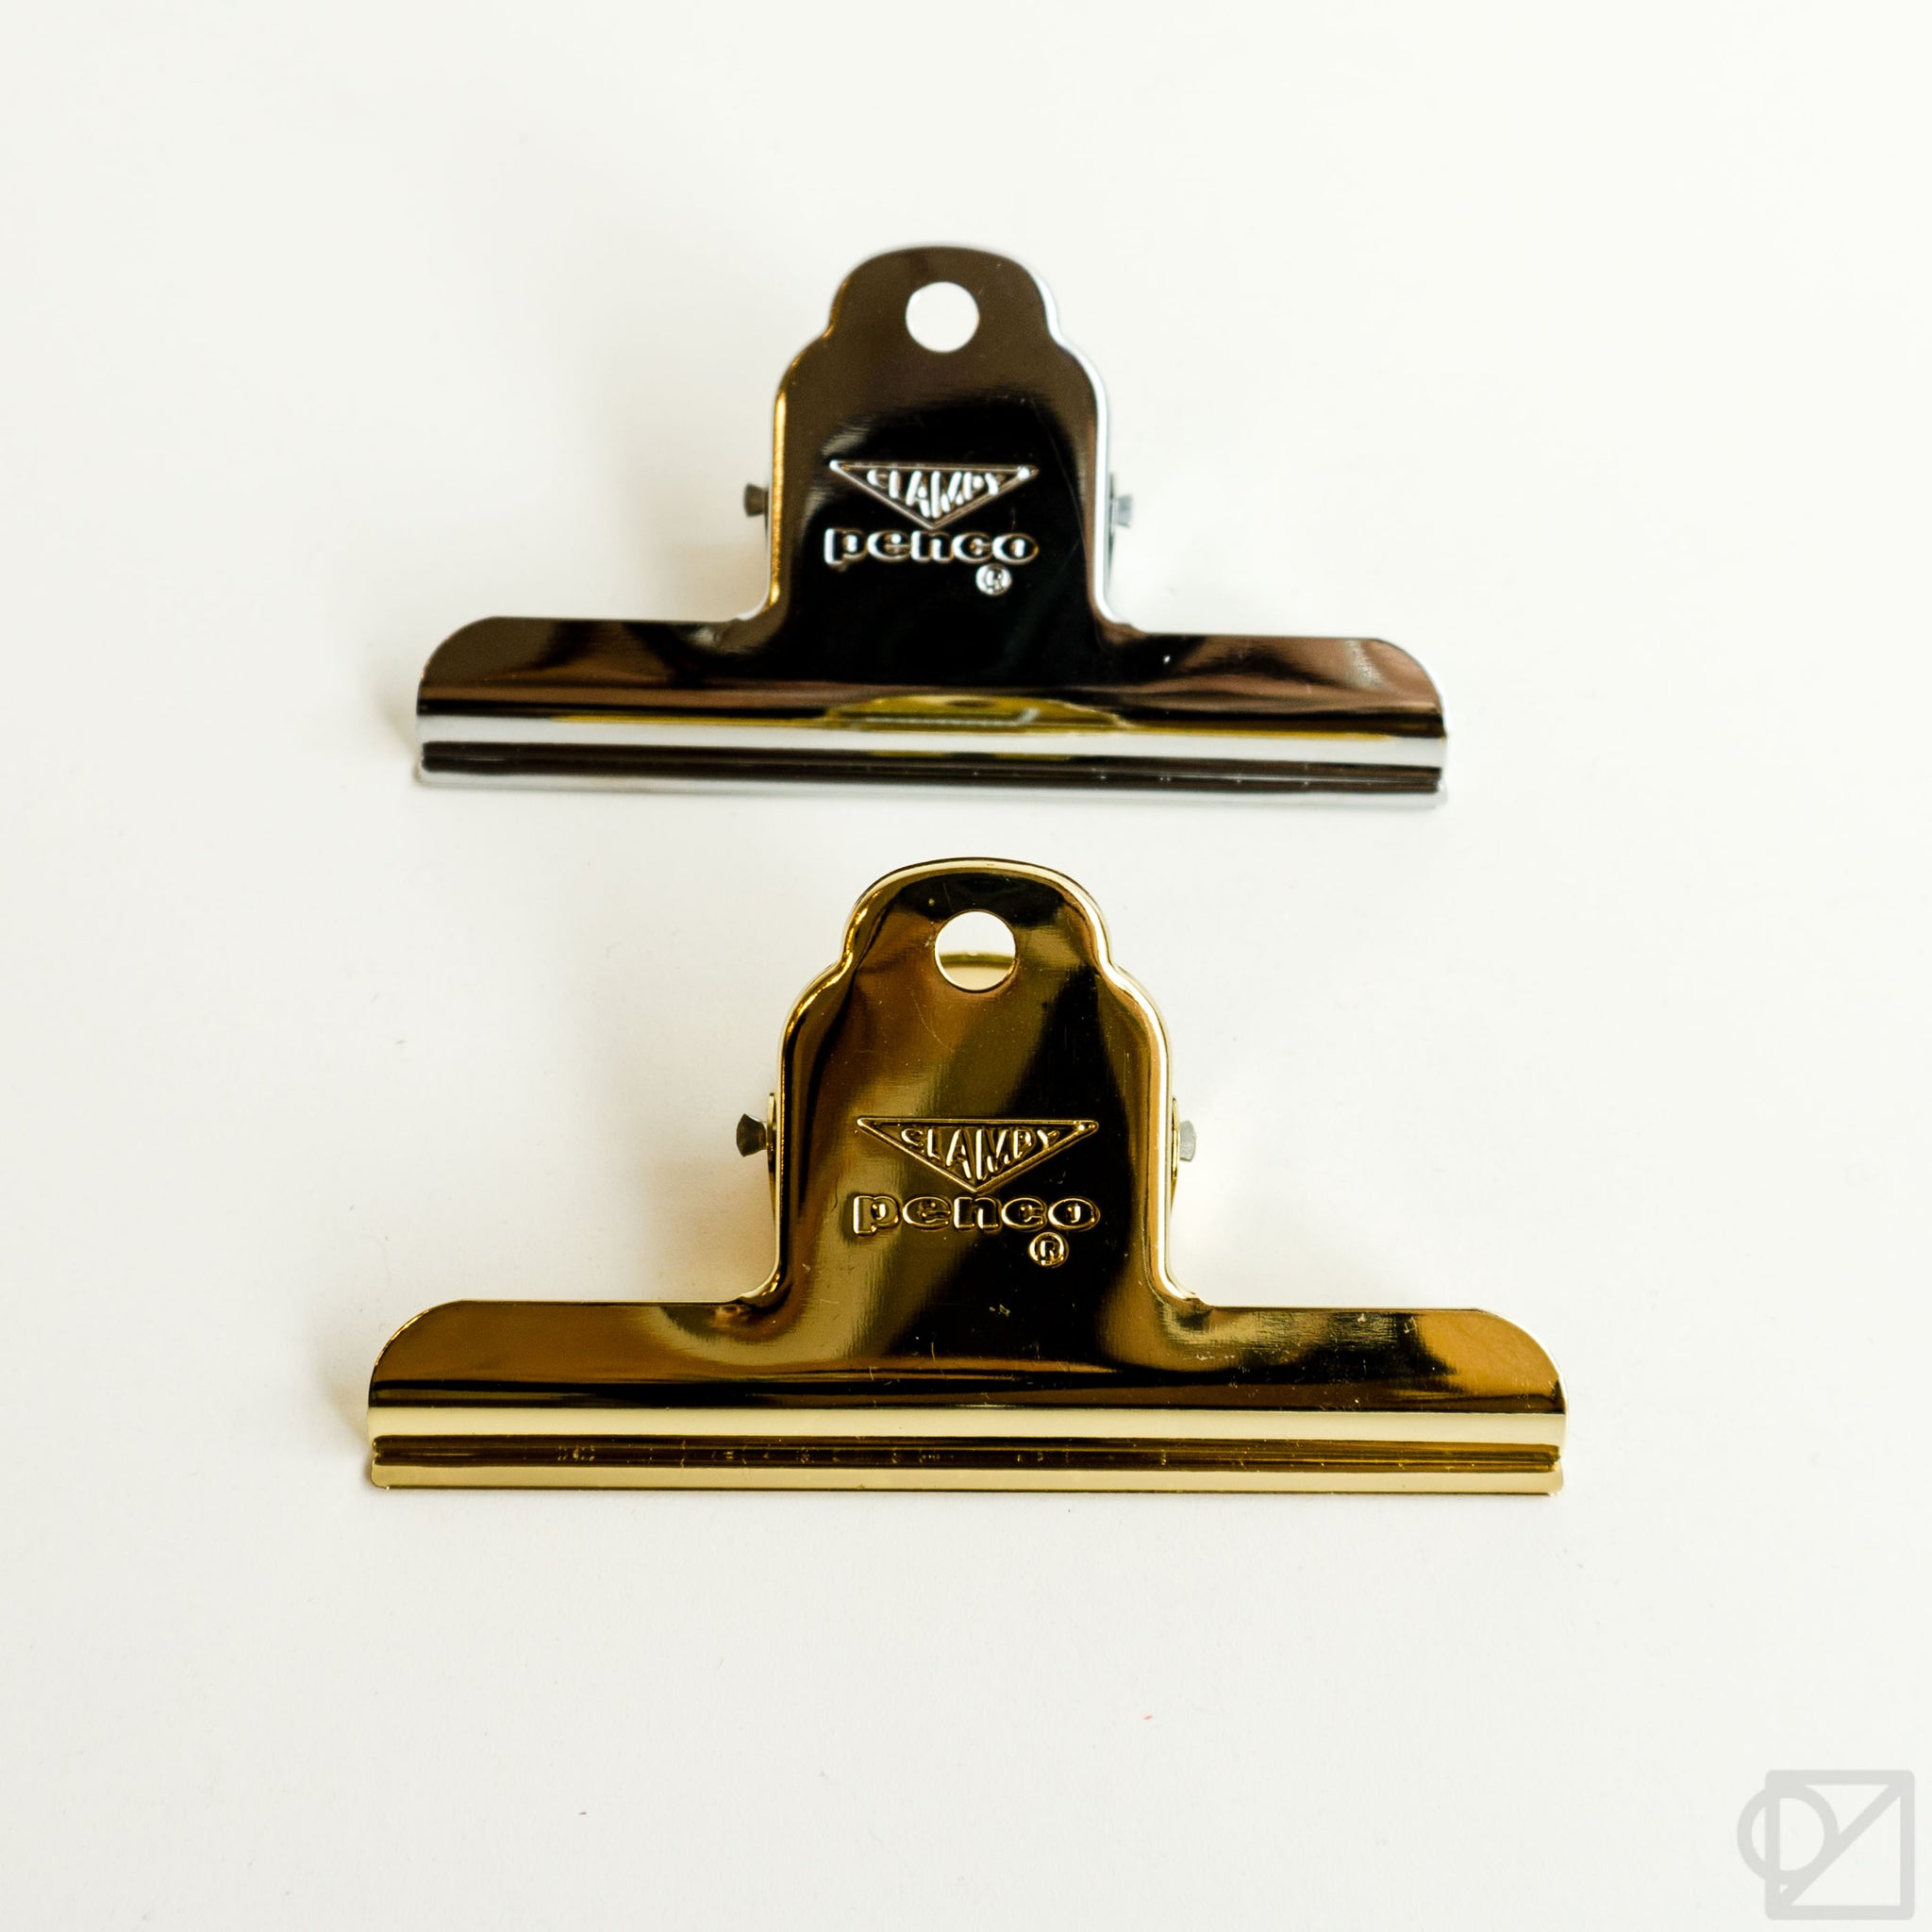 PENCO Clampy Steel Medium Binder Clips